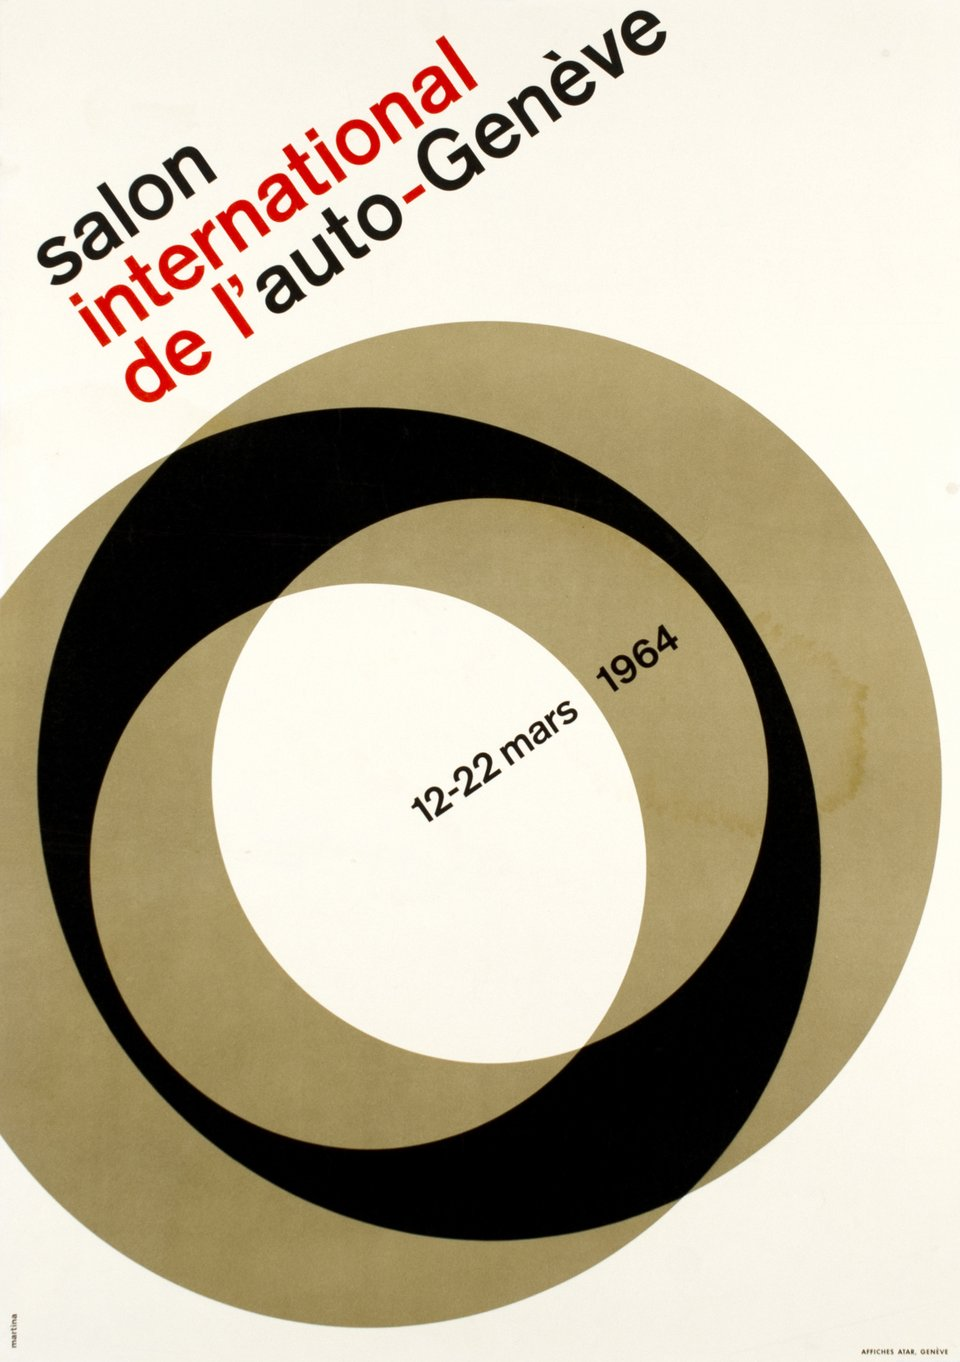 Genève, Salon International de l'Auto 1964 – Affiche ancienne – Michel MARTINA – 1964